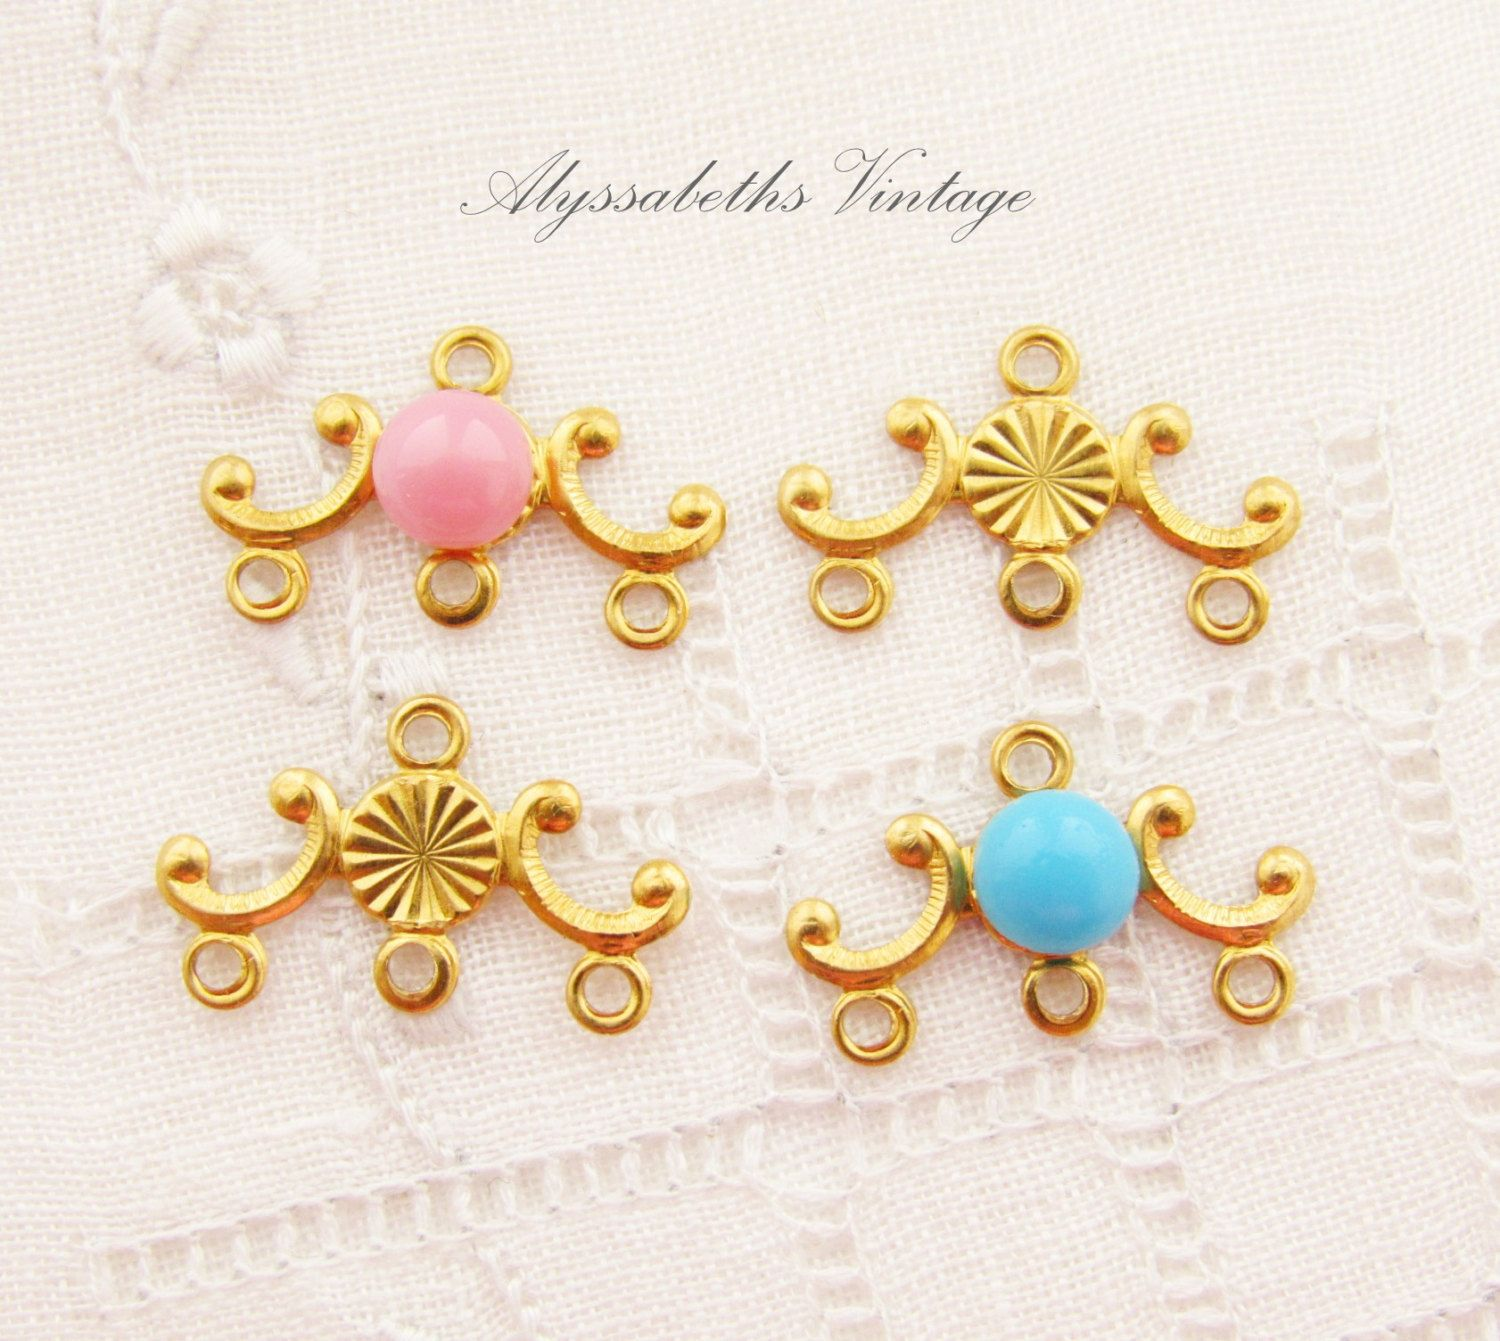 Petite brass scroll chandelier earring findings embossed sunburst petite brass scroll chandelier earring findings embossed sunburst center 5mm setting 6 by alyssabethsvintage on arubaitofo Image collections